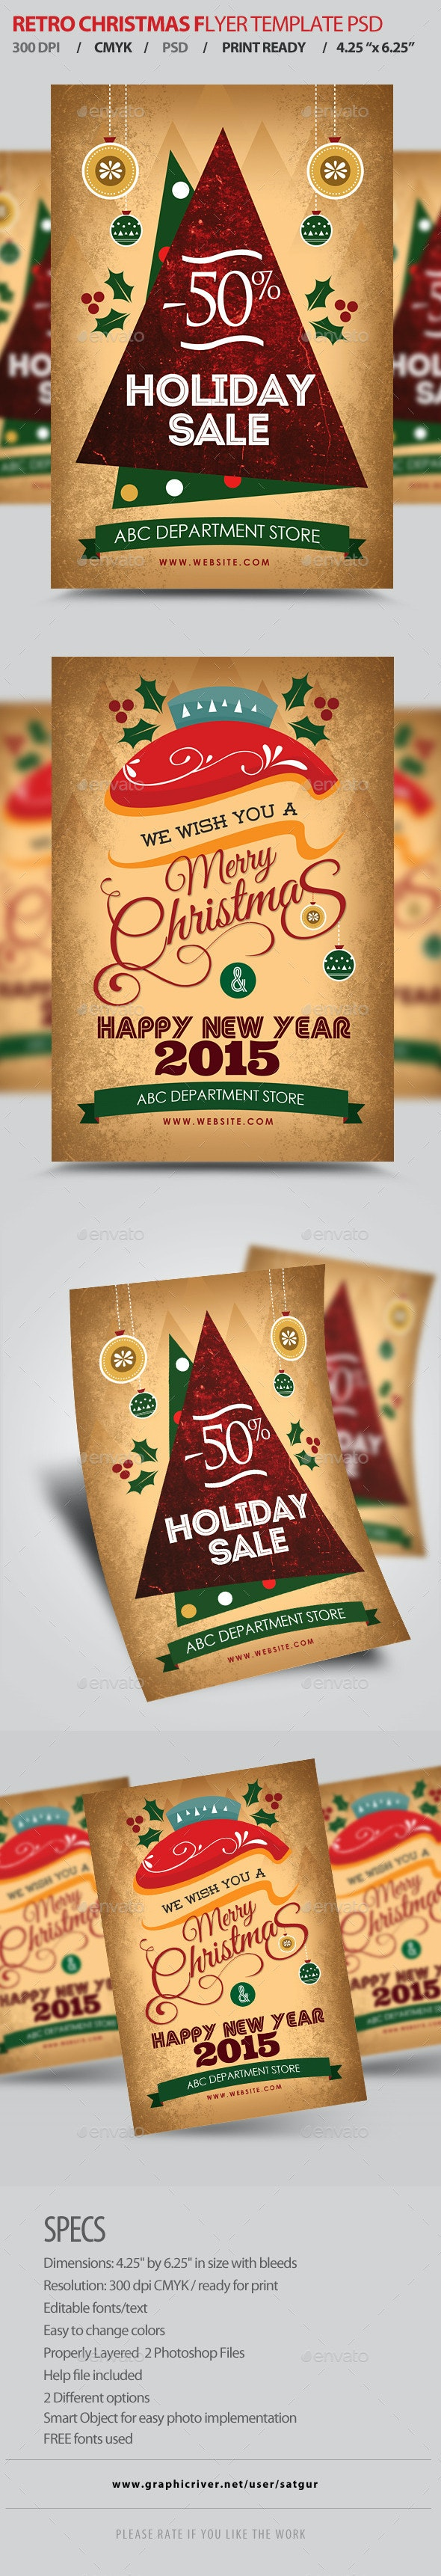 Retro Christmas Flyers Template PSD - Clubs & Parties Events